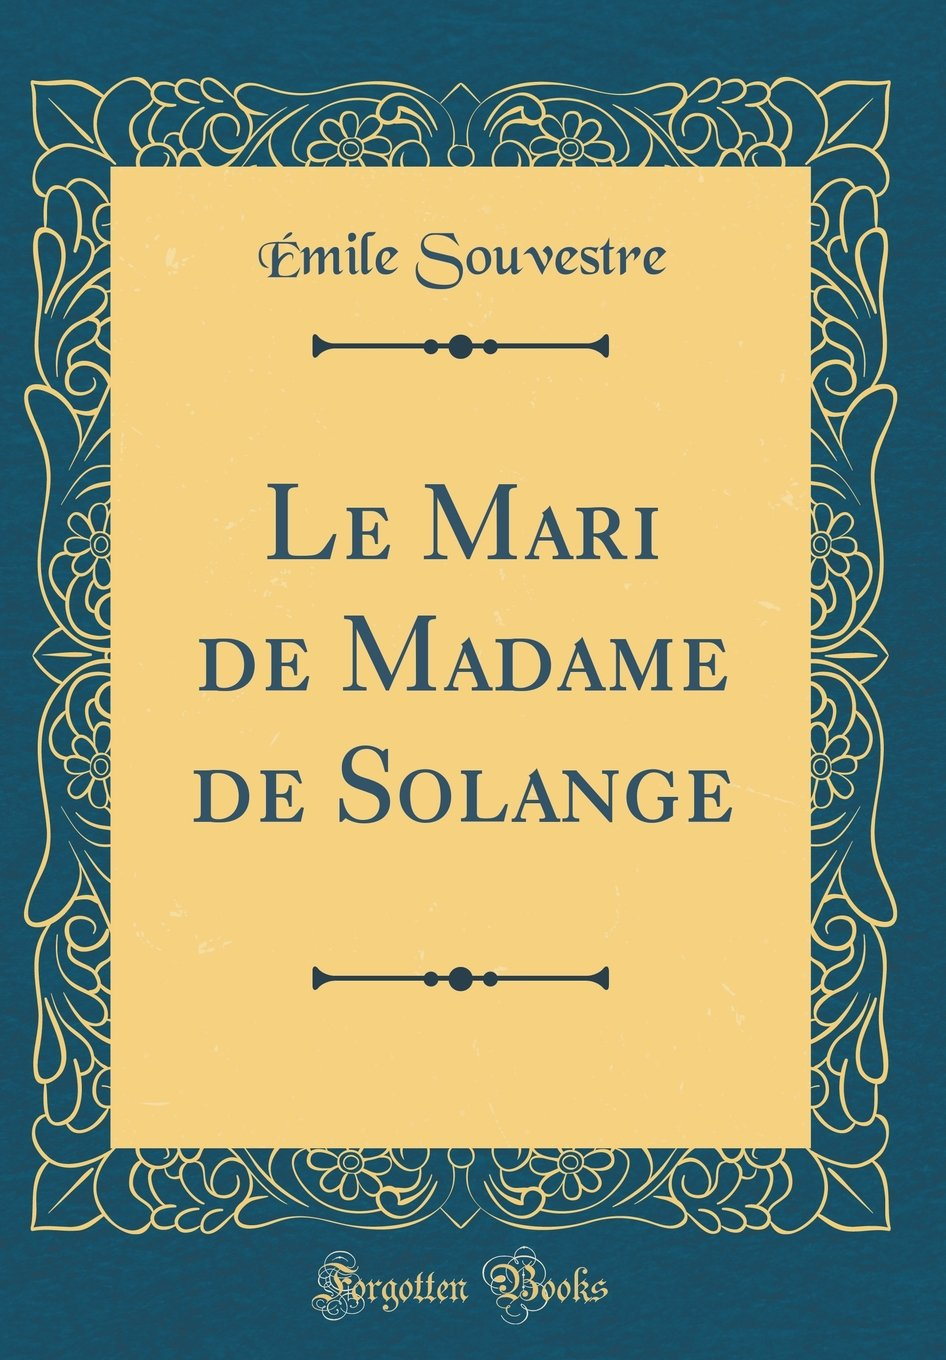 Le mari de madame de Solange (French Edition)